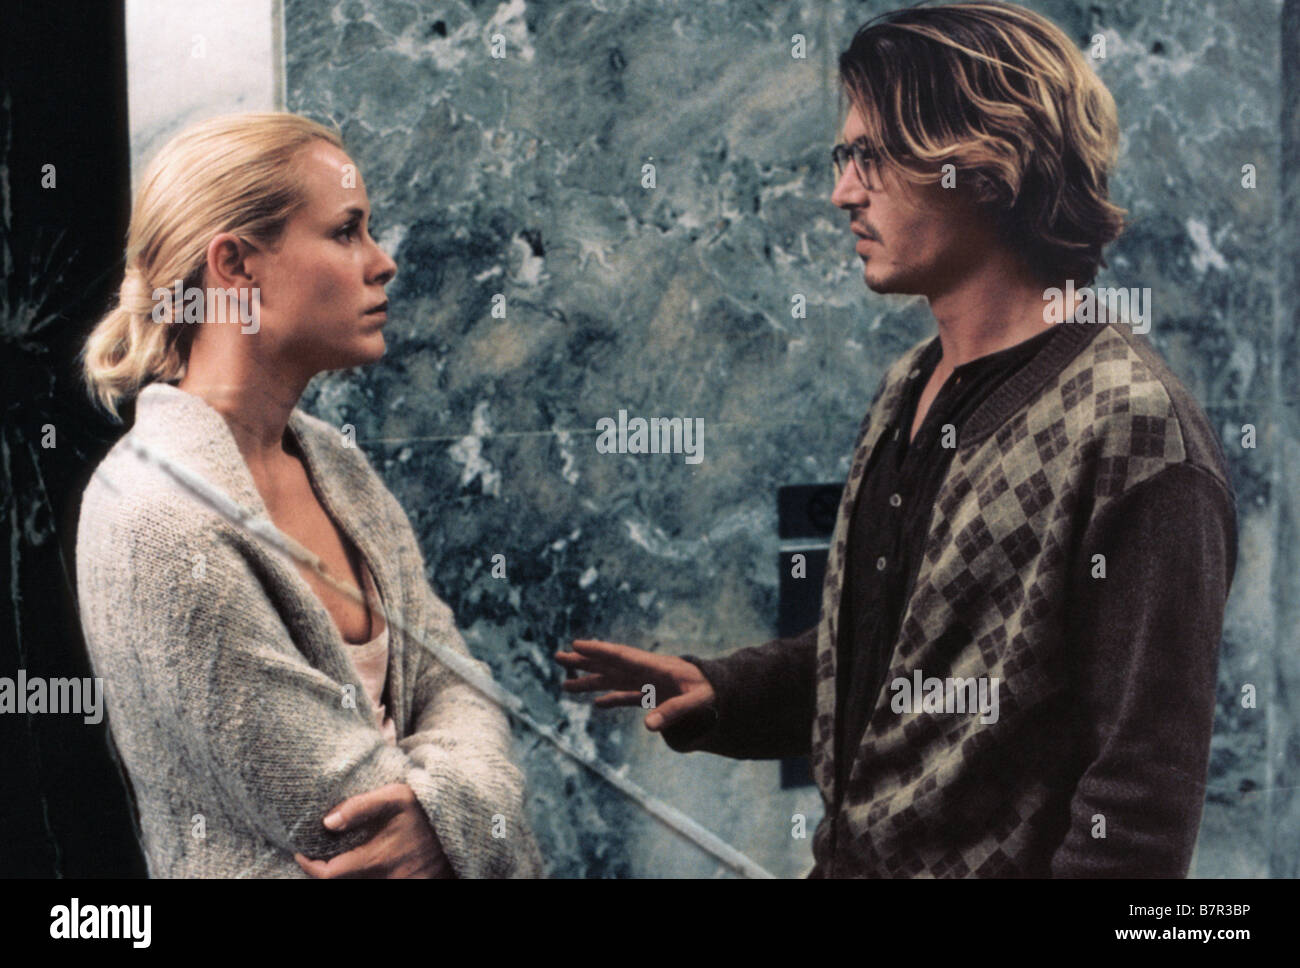 Fen tre secrete secret window ann e 2004 usa maria bello for Fenetre secrete